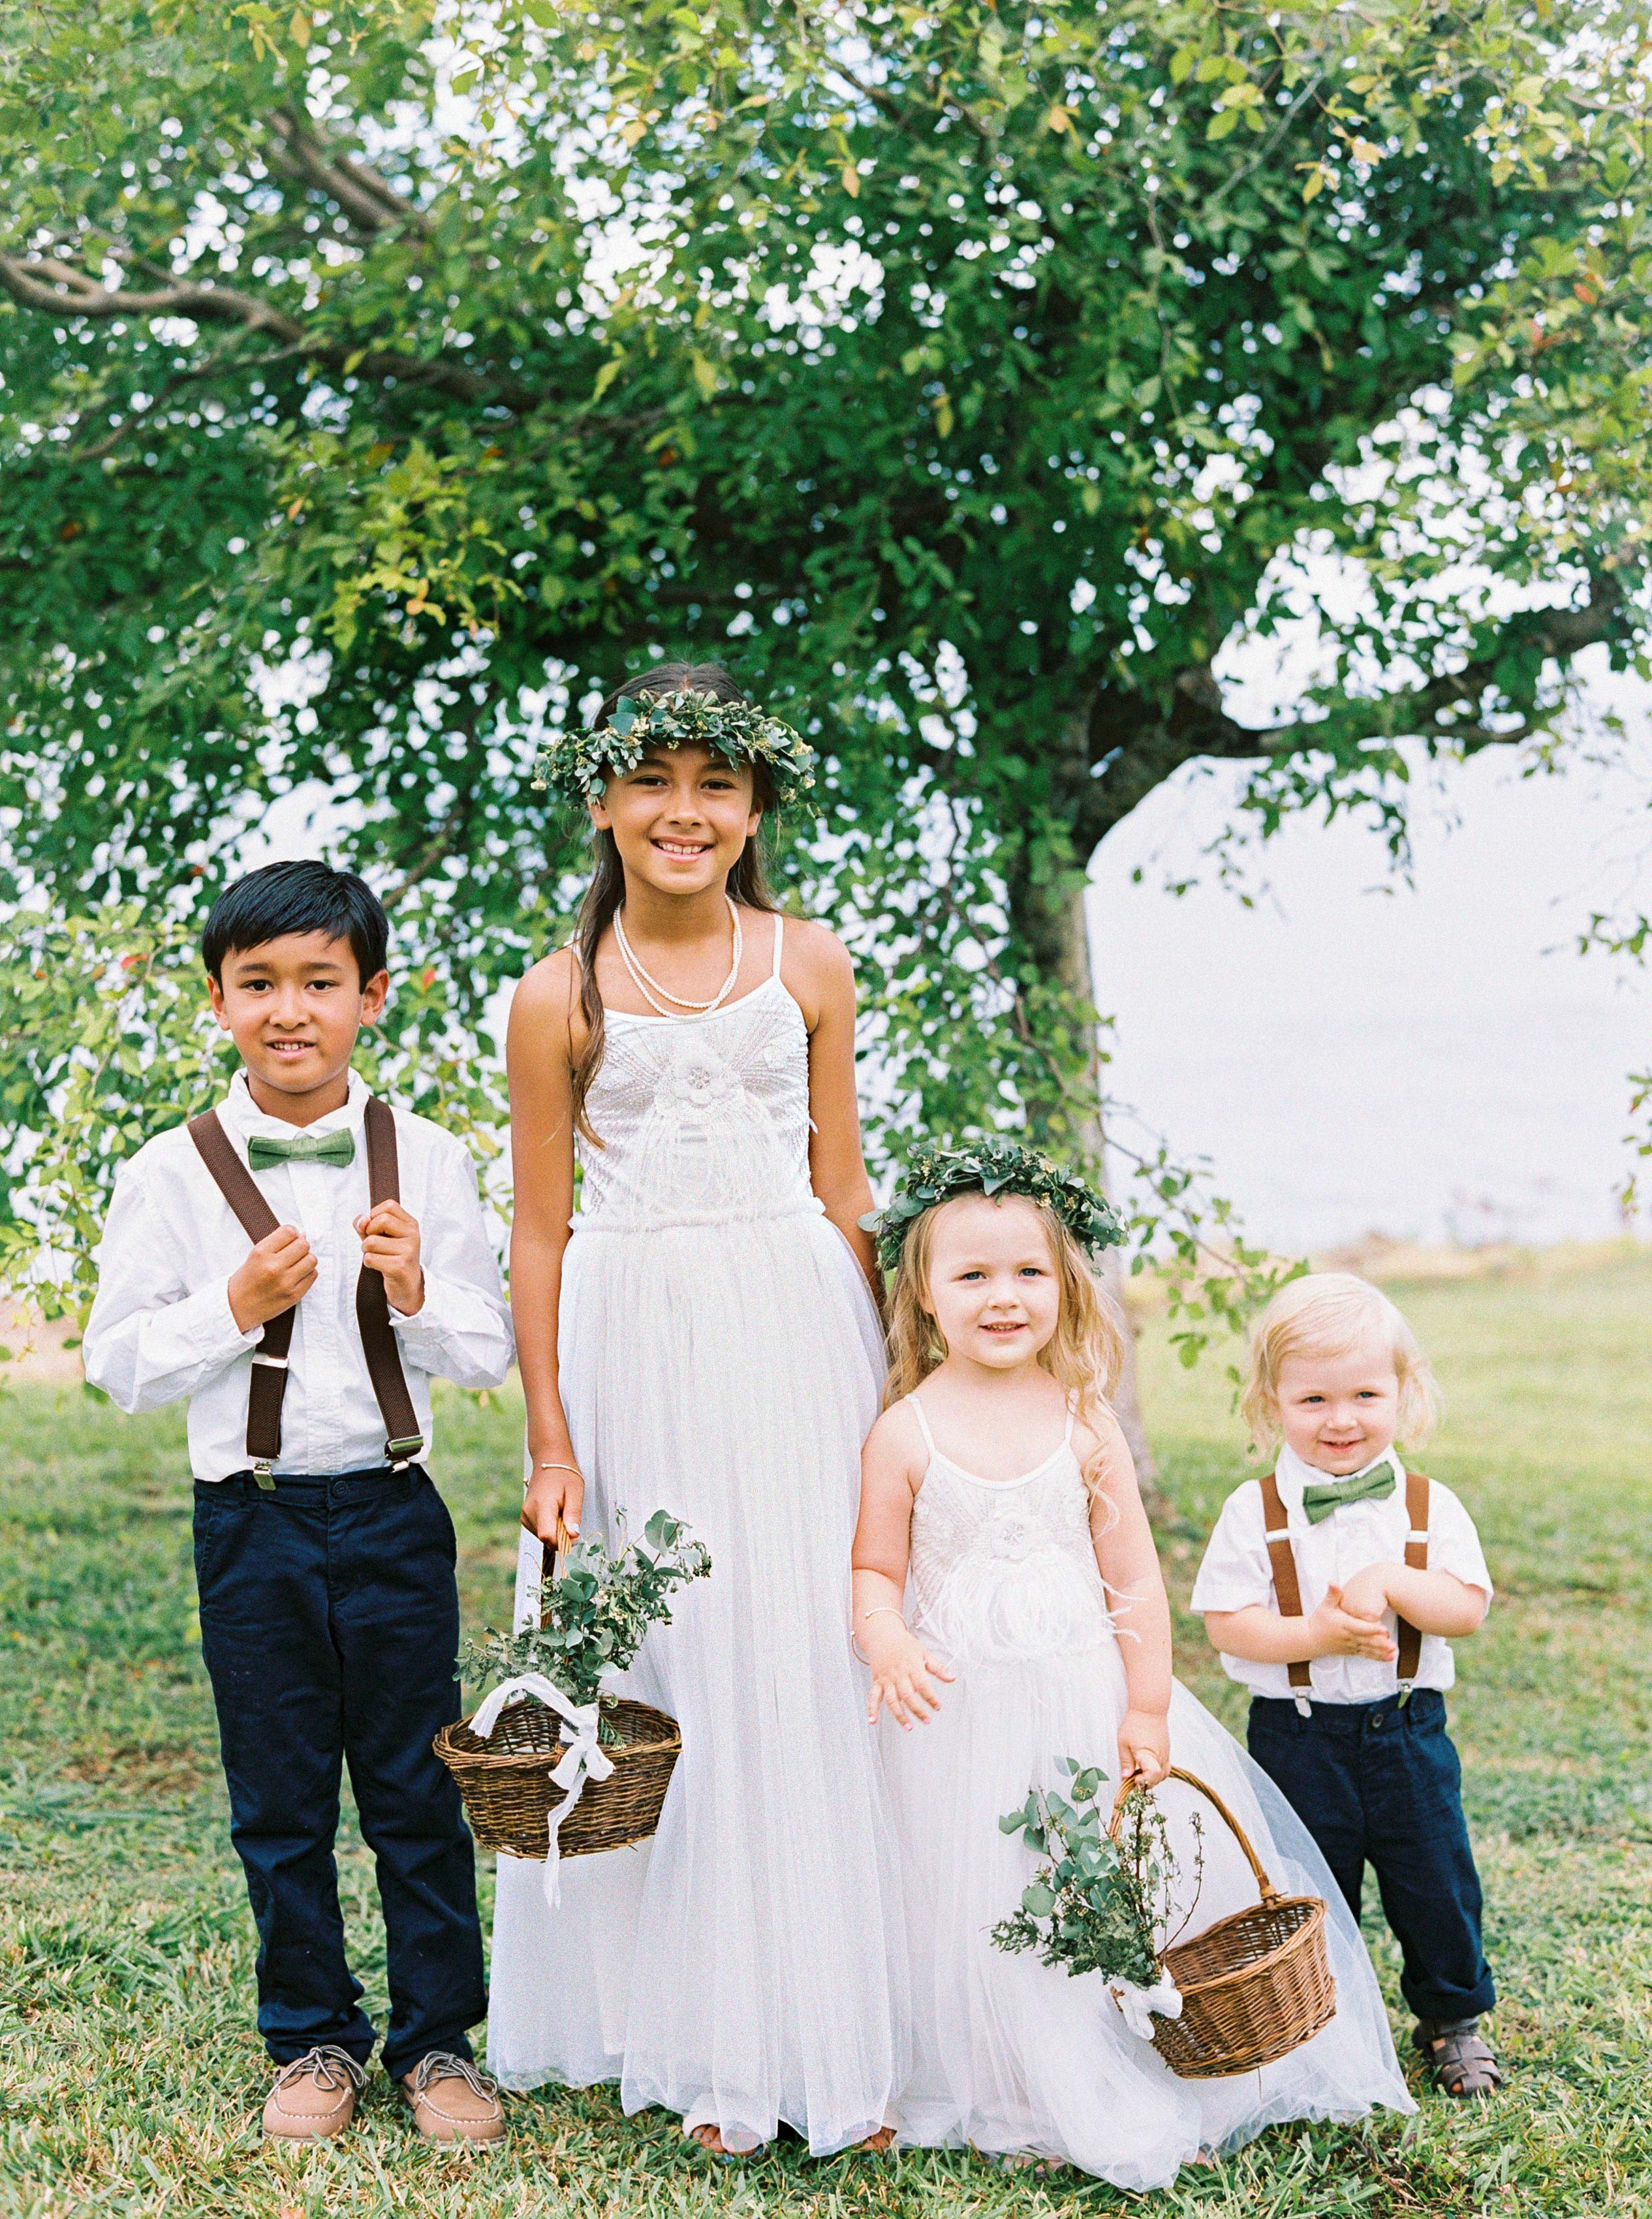 What You Need to Know About Childcare for a Destination Wedding